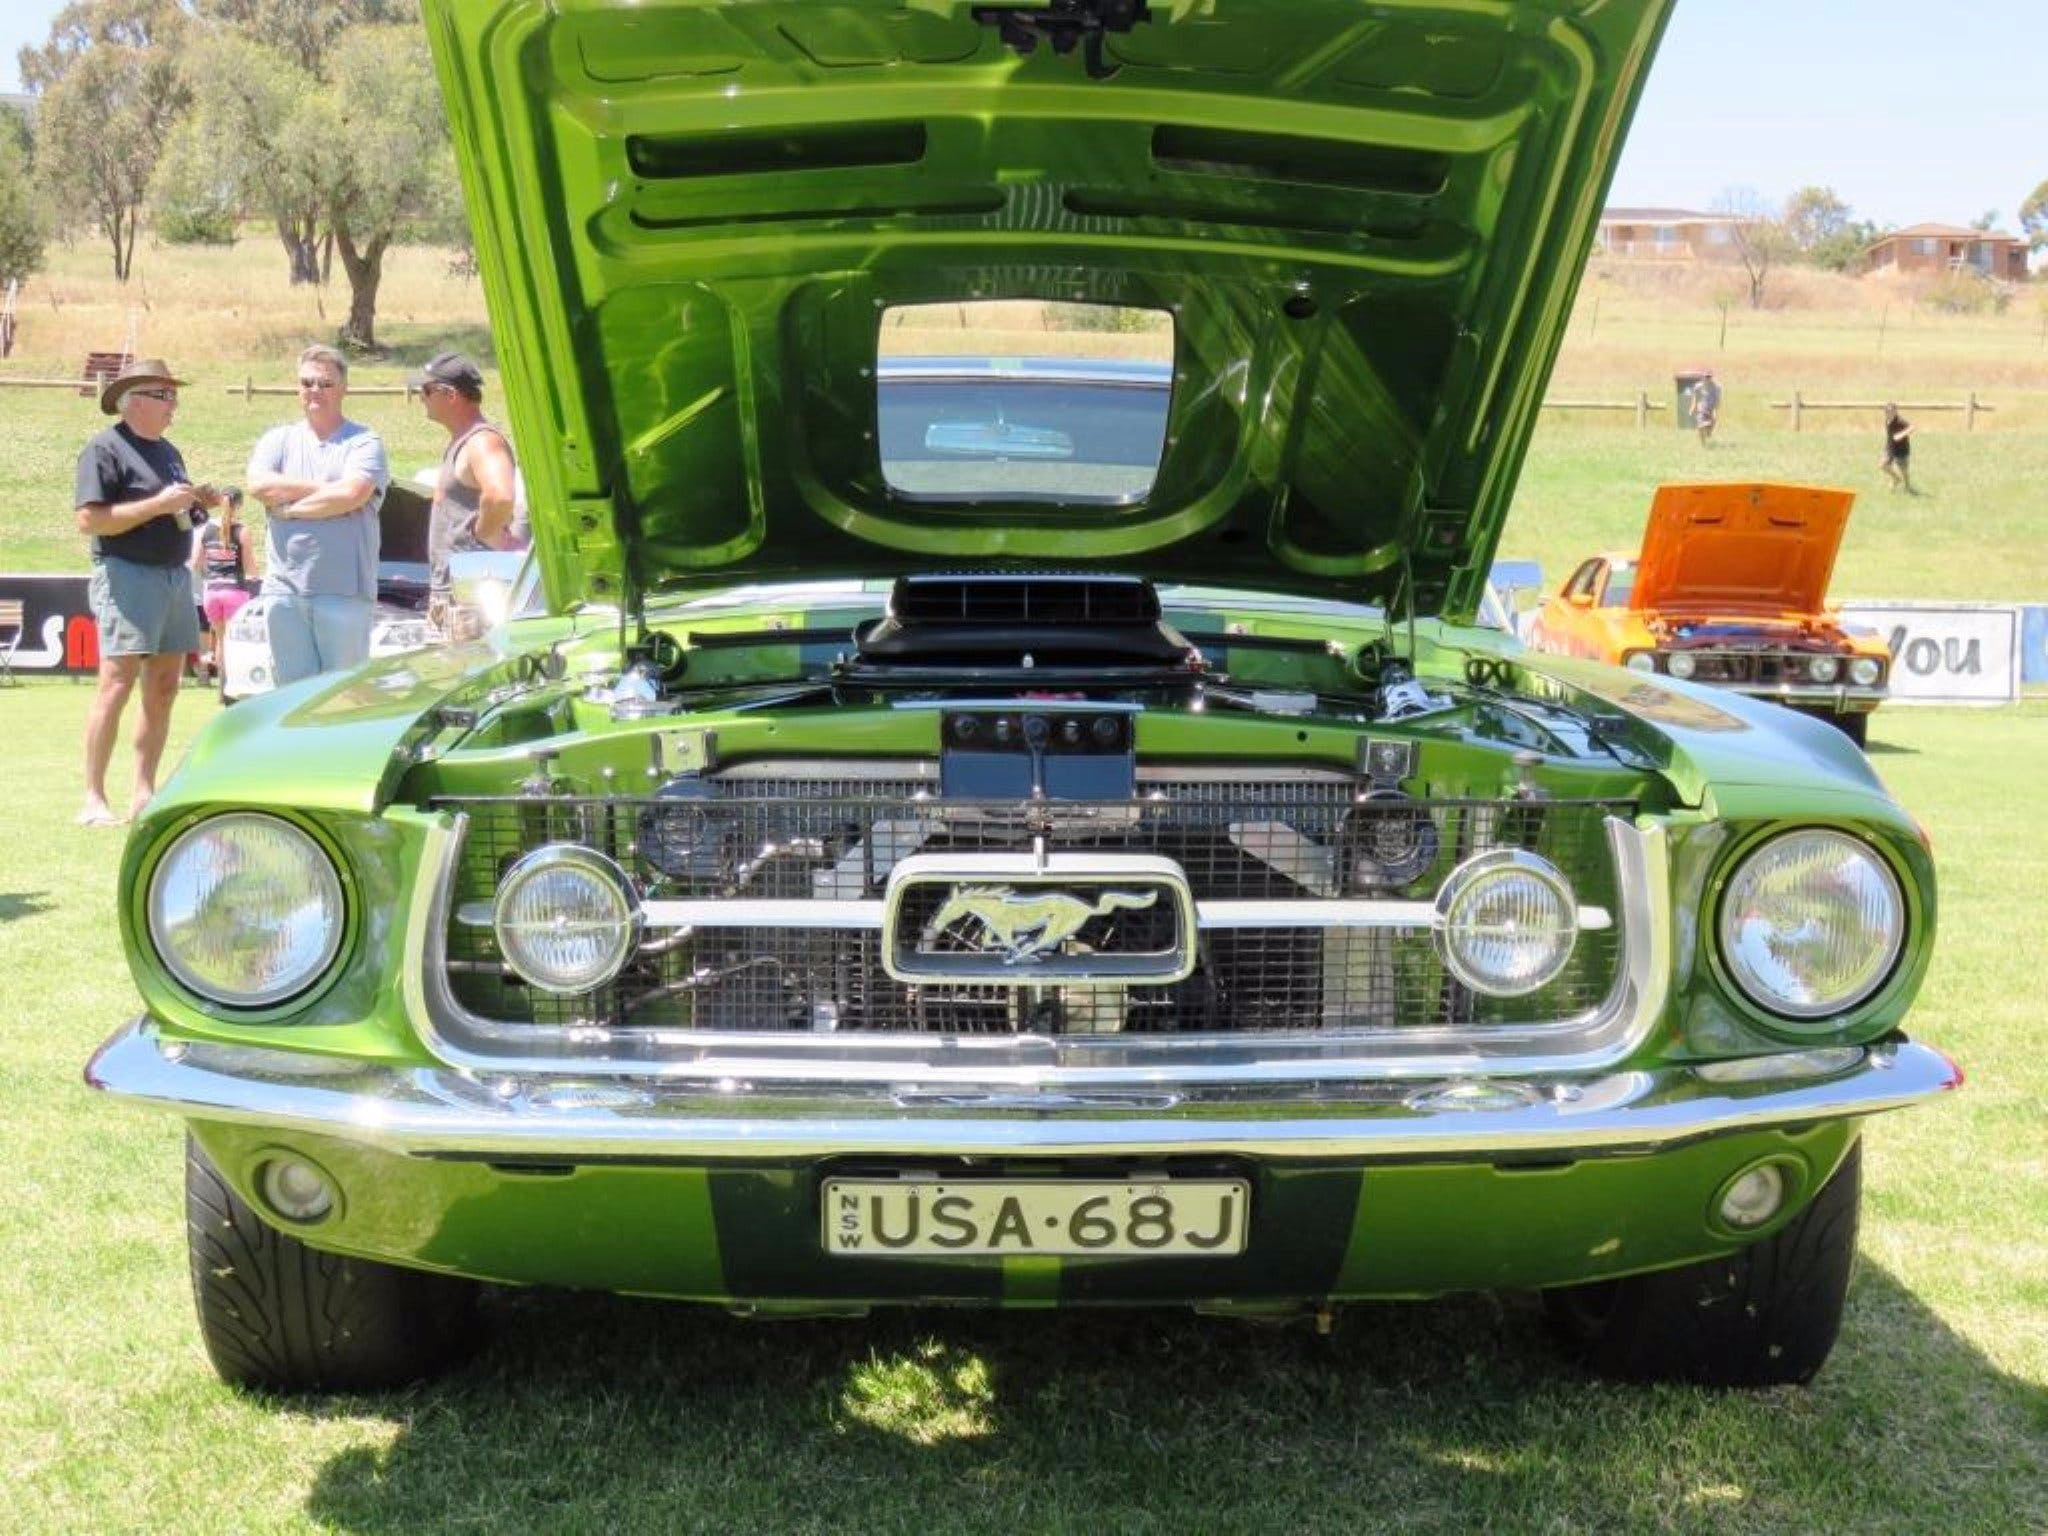 Central West Car Club Charity Show and Shine - Palm Beach Accommodation